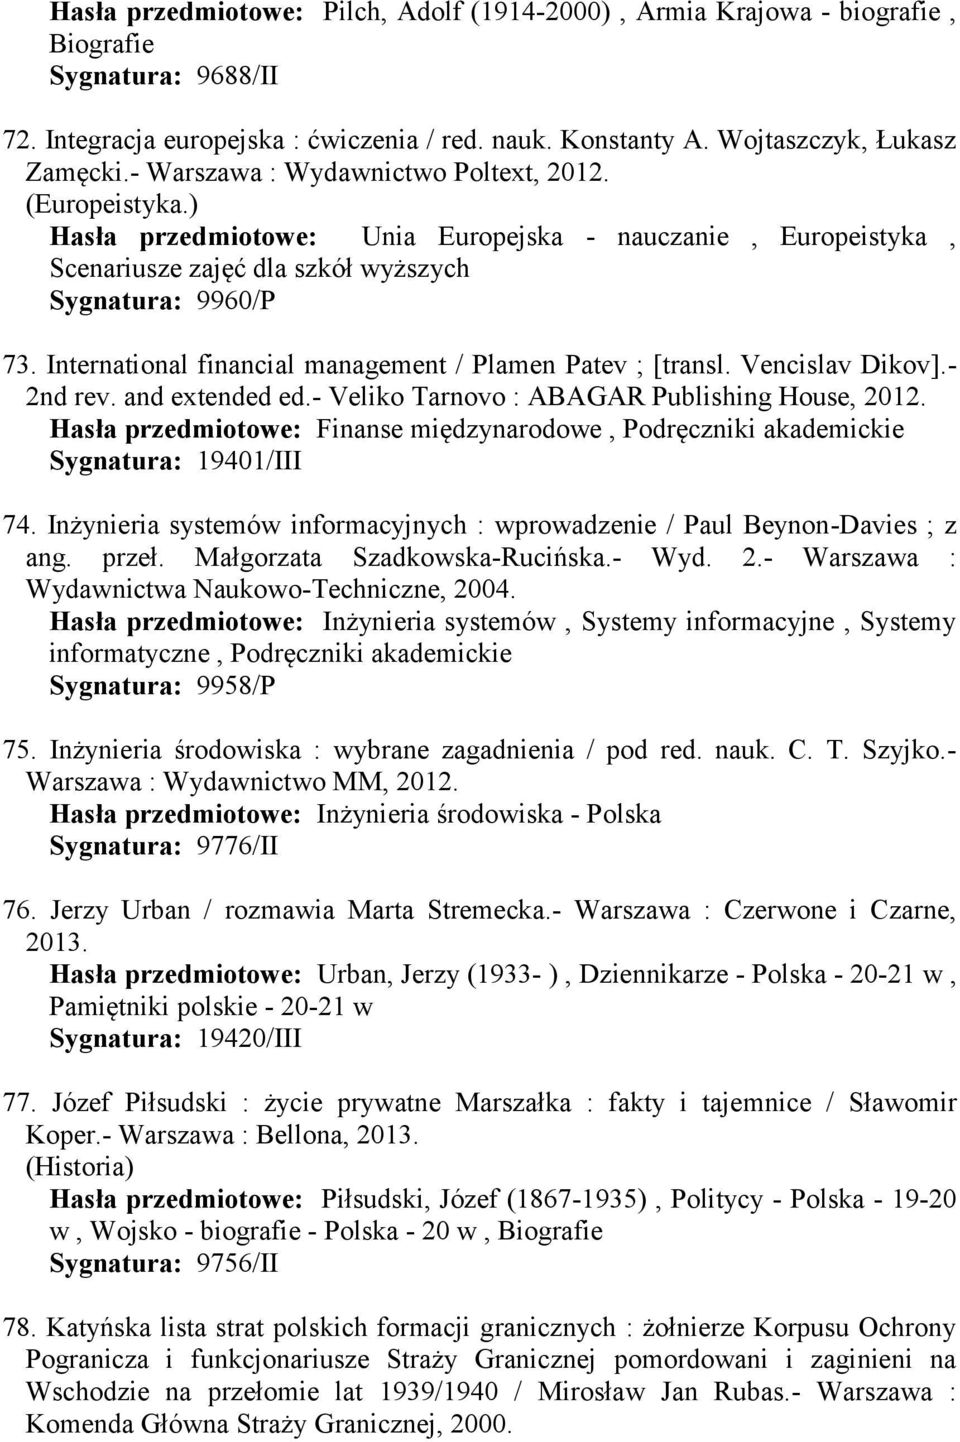 International financial management / Plamen Patev ; [transl. Vencislav Dikov].- 2nd rev. and extended ed.- Veliko Tarnovo : ABAGAR Publishing House, 2012.